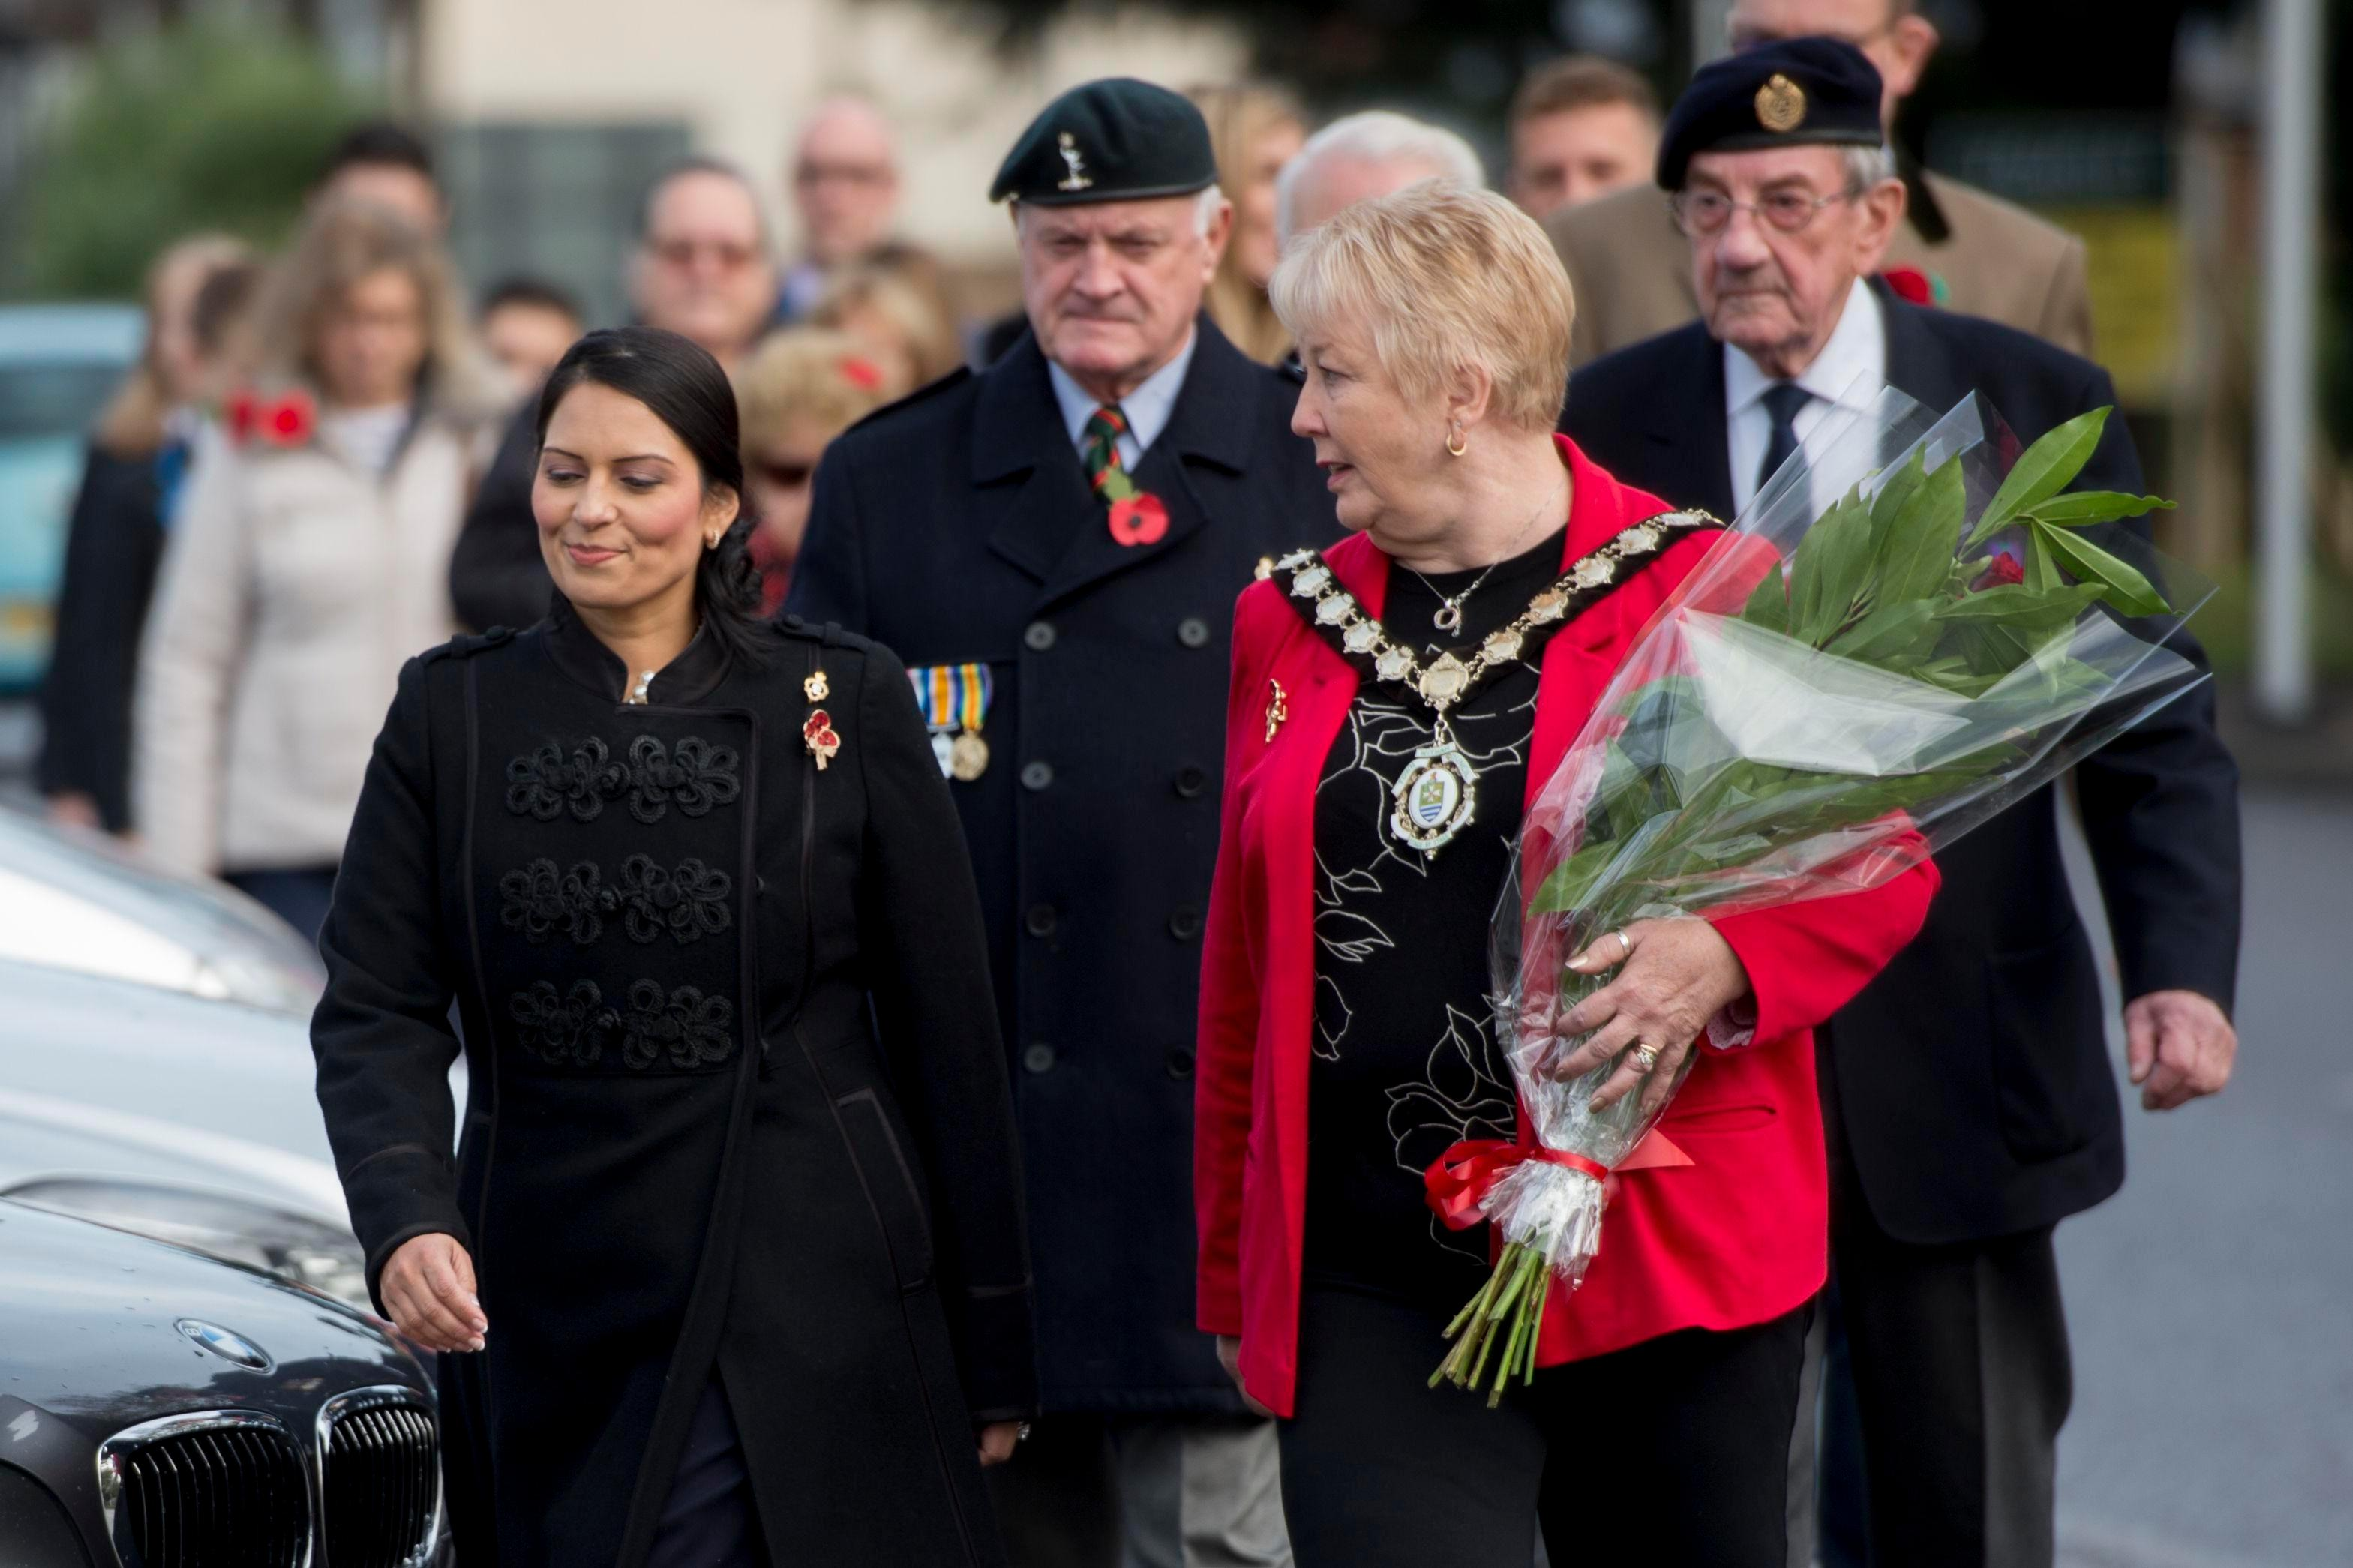 ac280164e161d7580e9b8cabb92d6d3a Priti Patel makes first public appearance since resigning from government over unauthorised Israel meetings